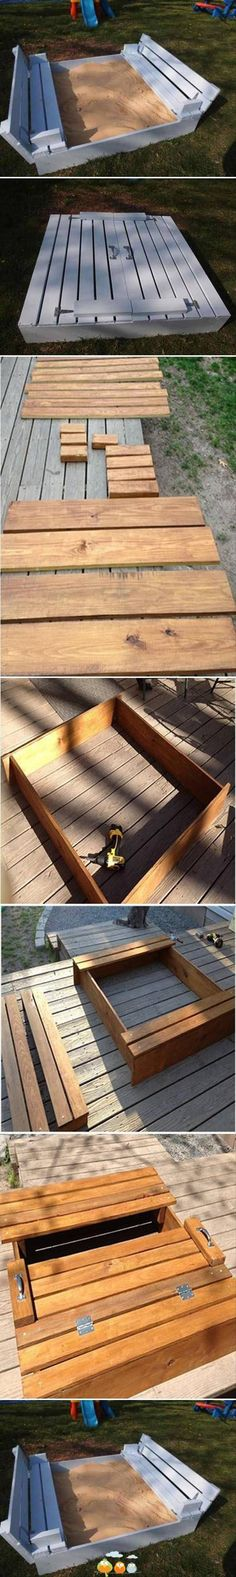 Clever Pallet sandbox with benches- love!